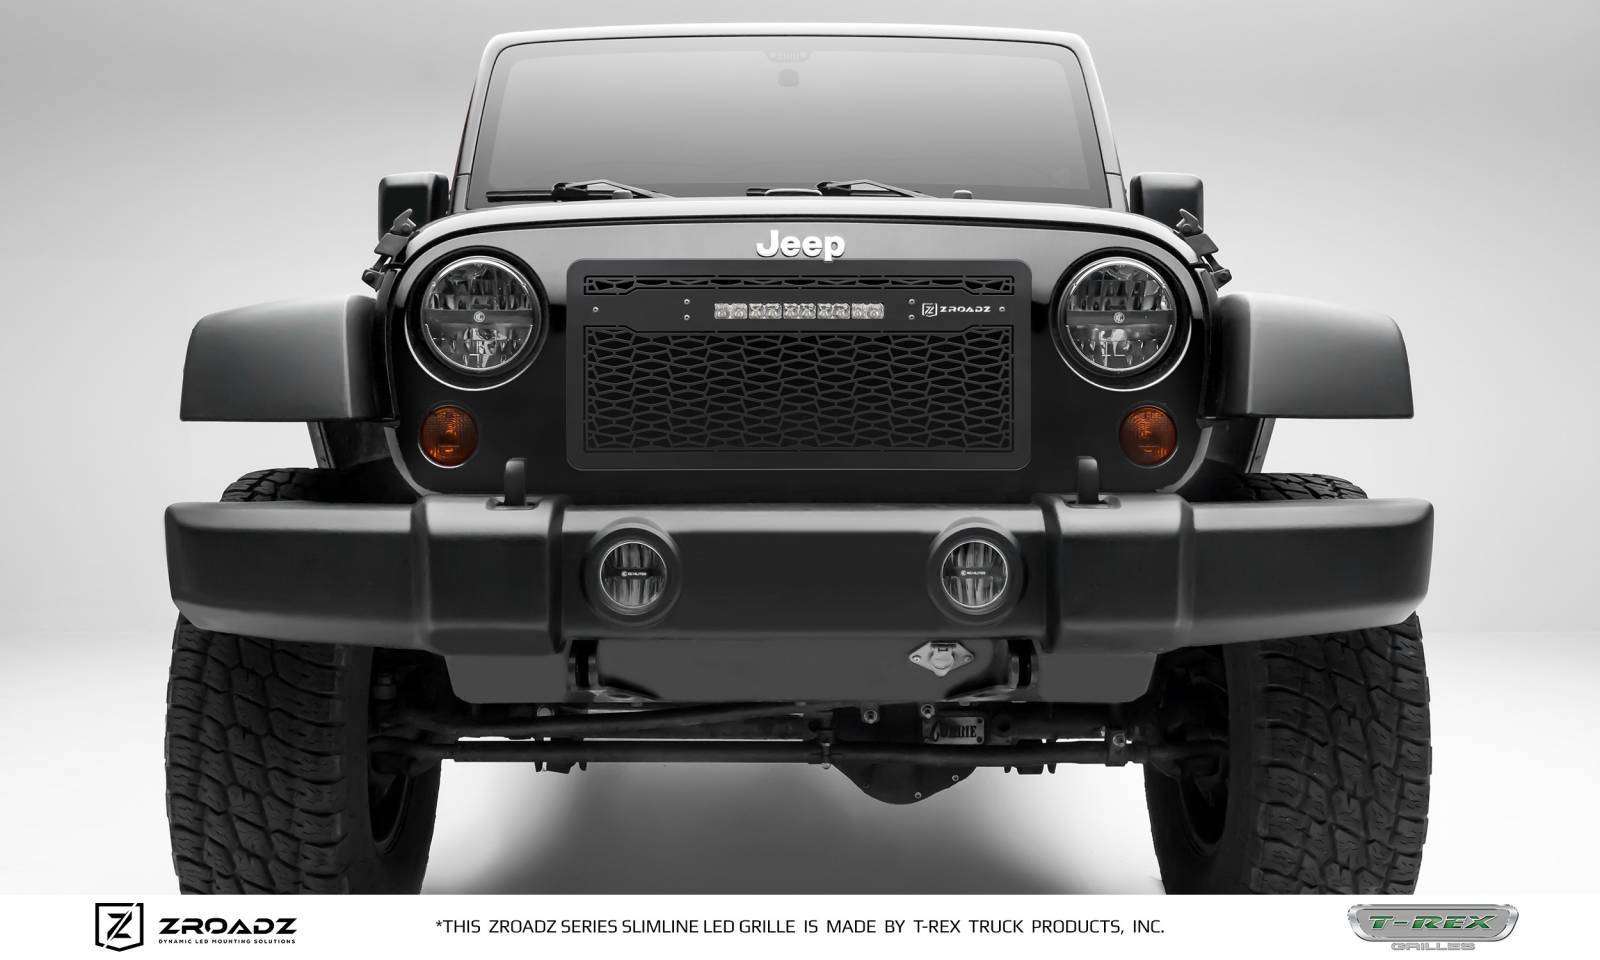 T-REX Grilles - 2007-2018 Jeep JK Main Grille, Including (1) 10 Inch ZROADZ LED Straight Single Row Slim Light Bar - Z314831-10C